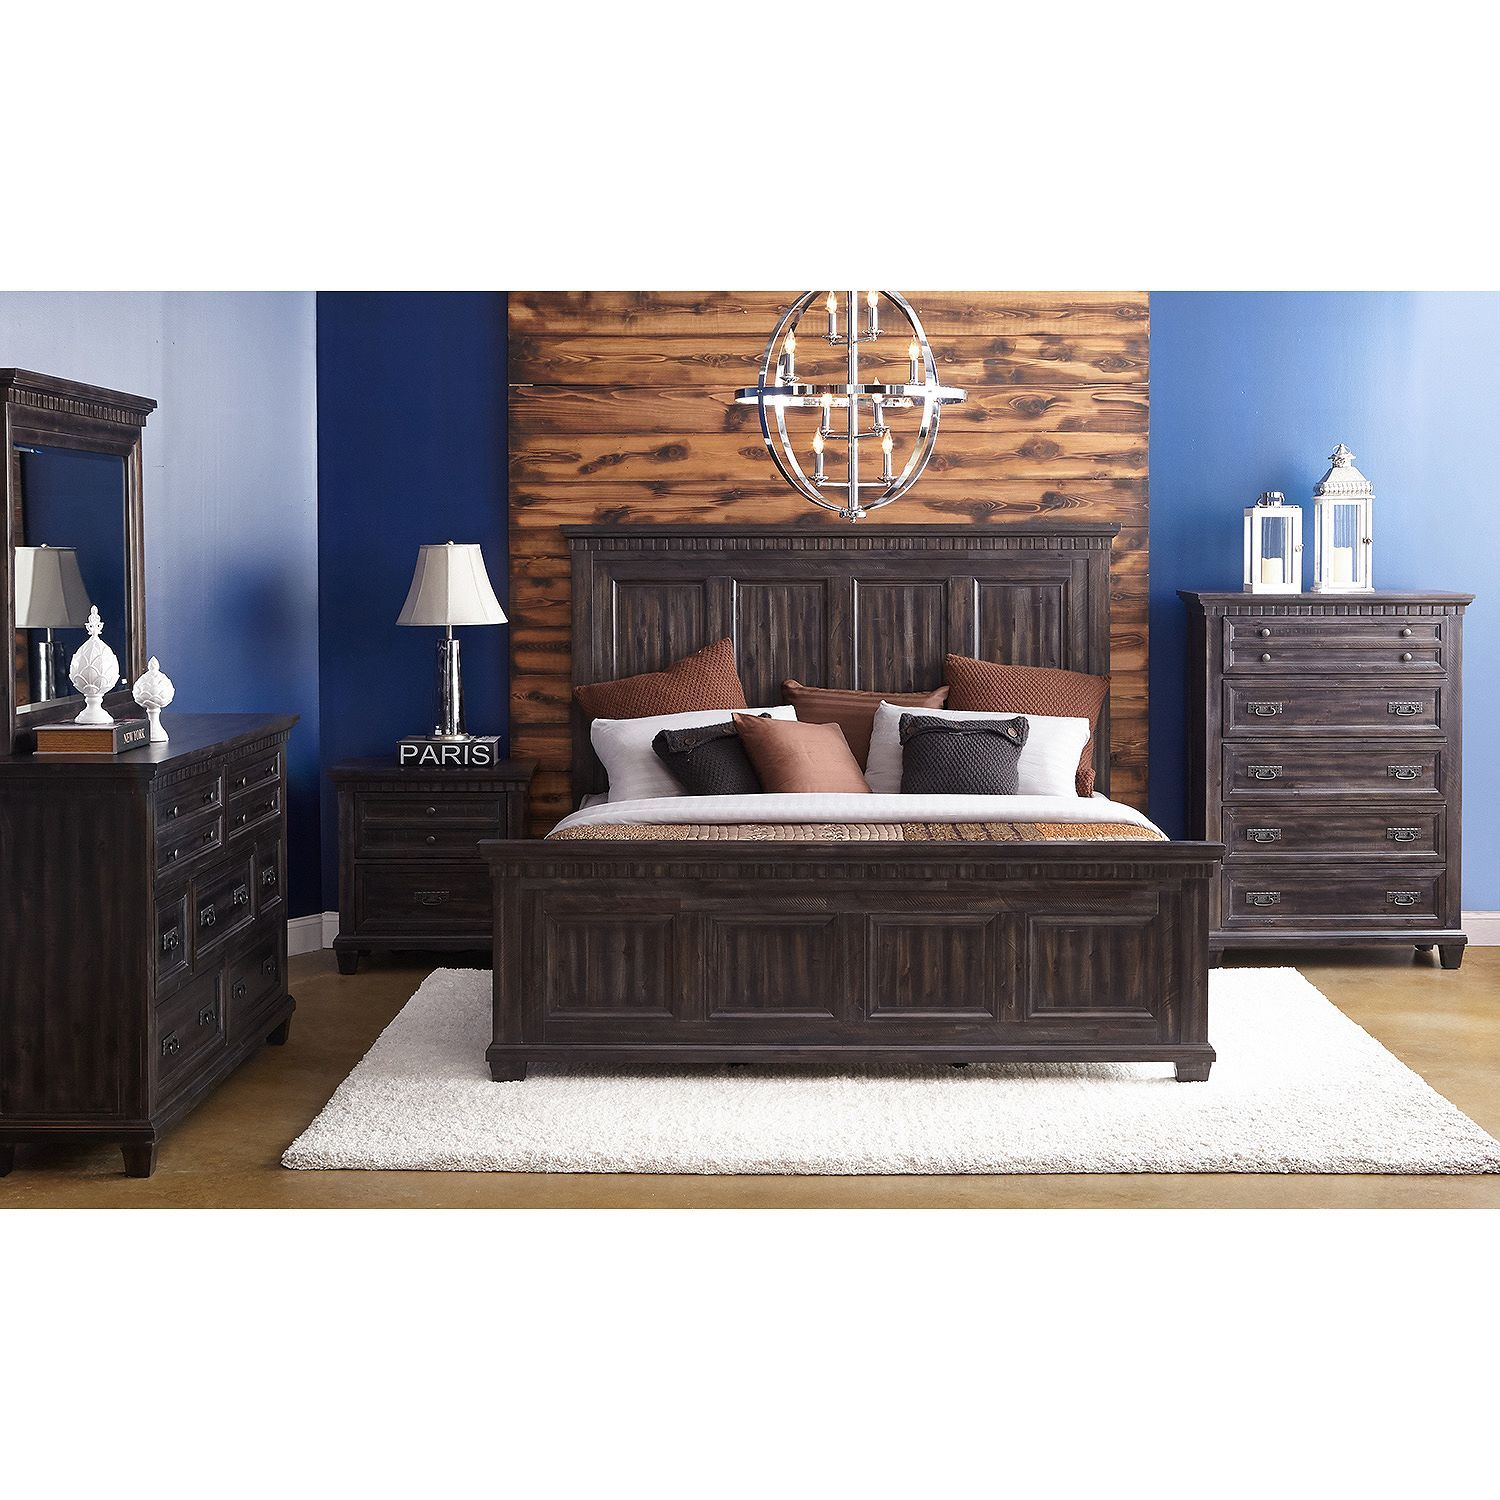 Steele Bedroom Furniture Set (Assorted Sizes) - Sam\'s Club ...